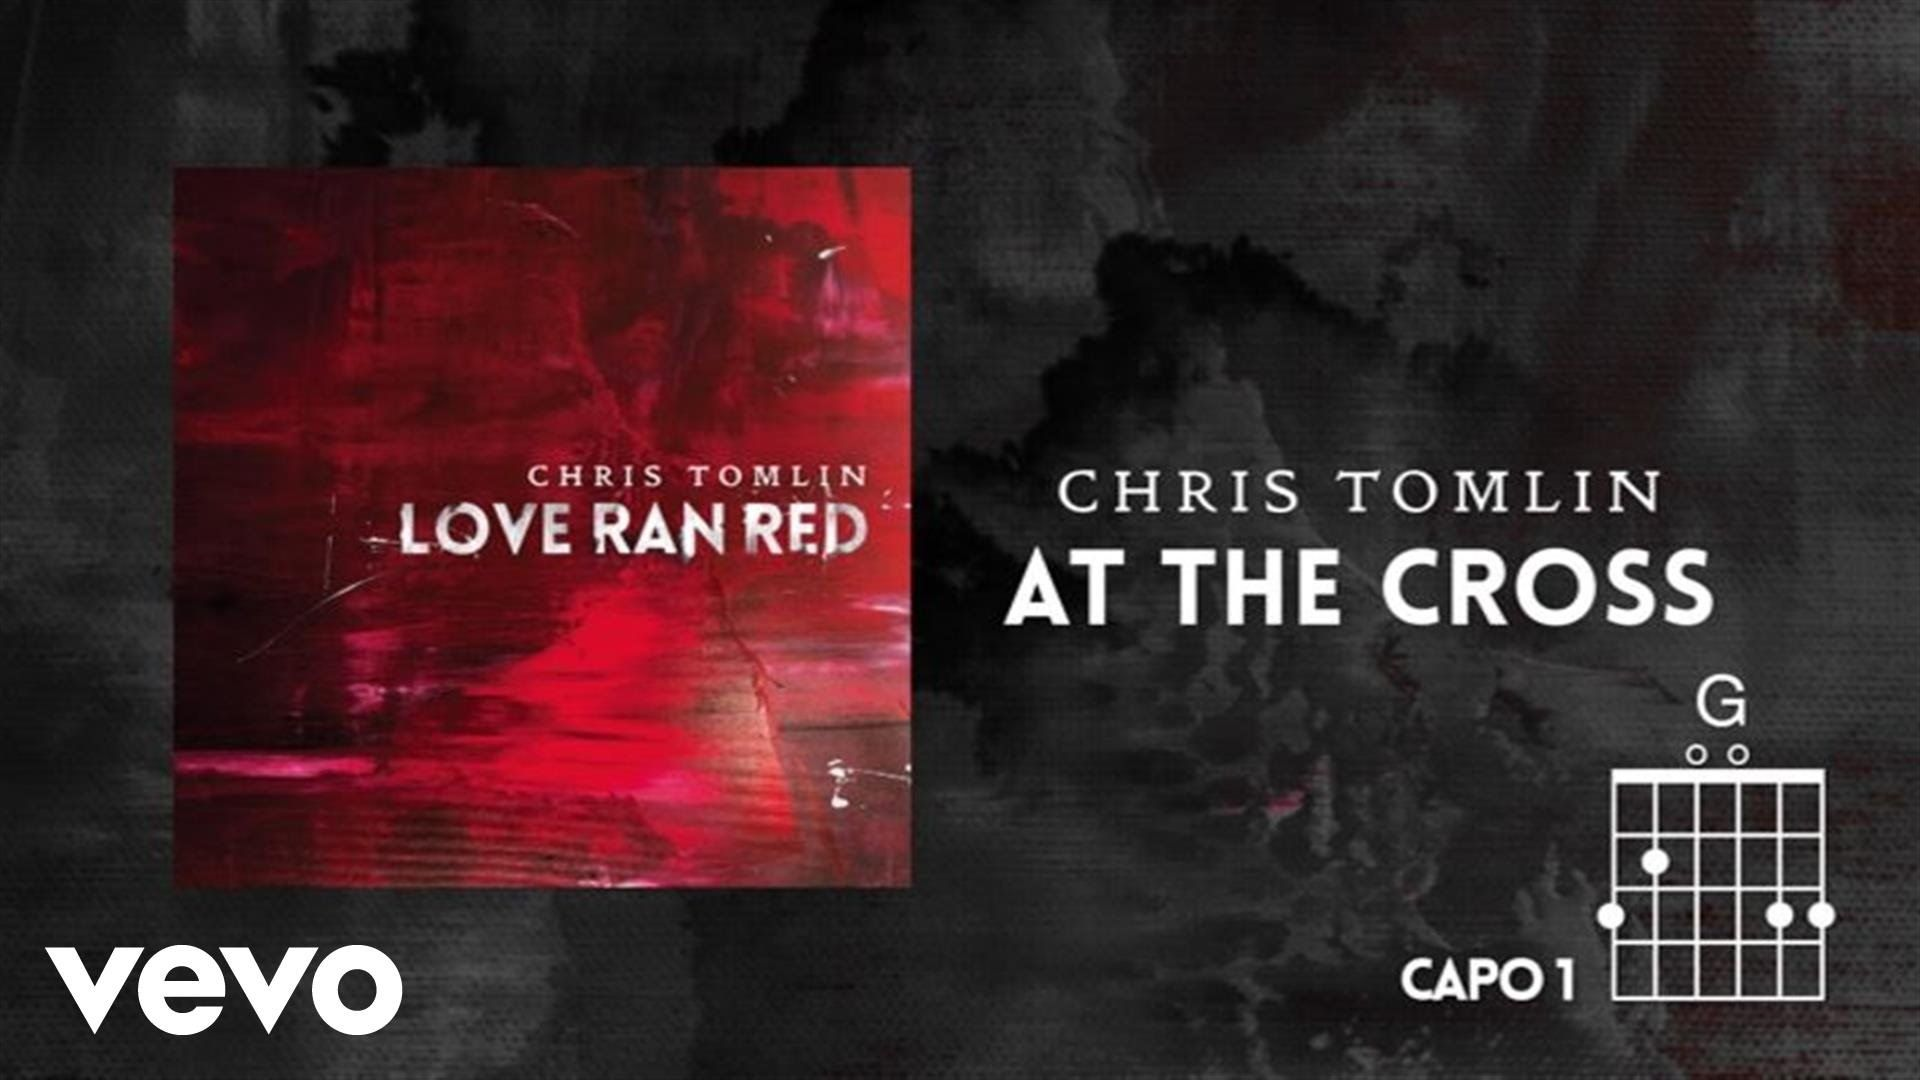 CHRIS TOMLIN At The Cross (Love Ran Red) > These songs